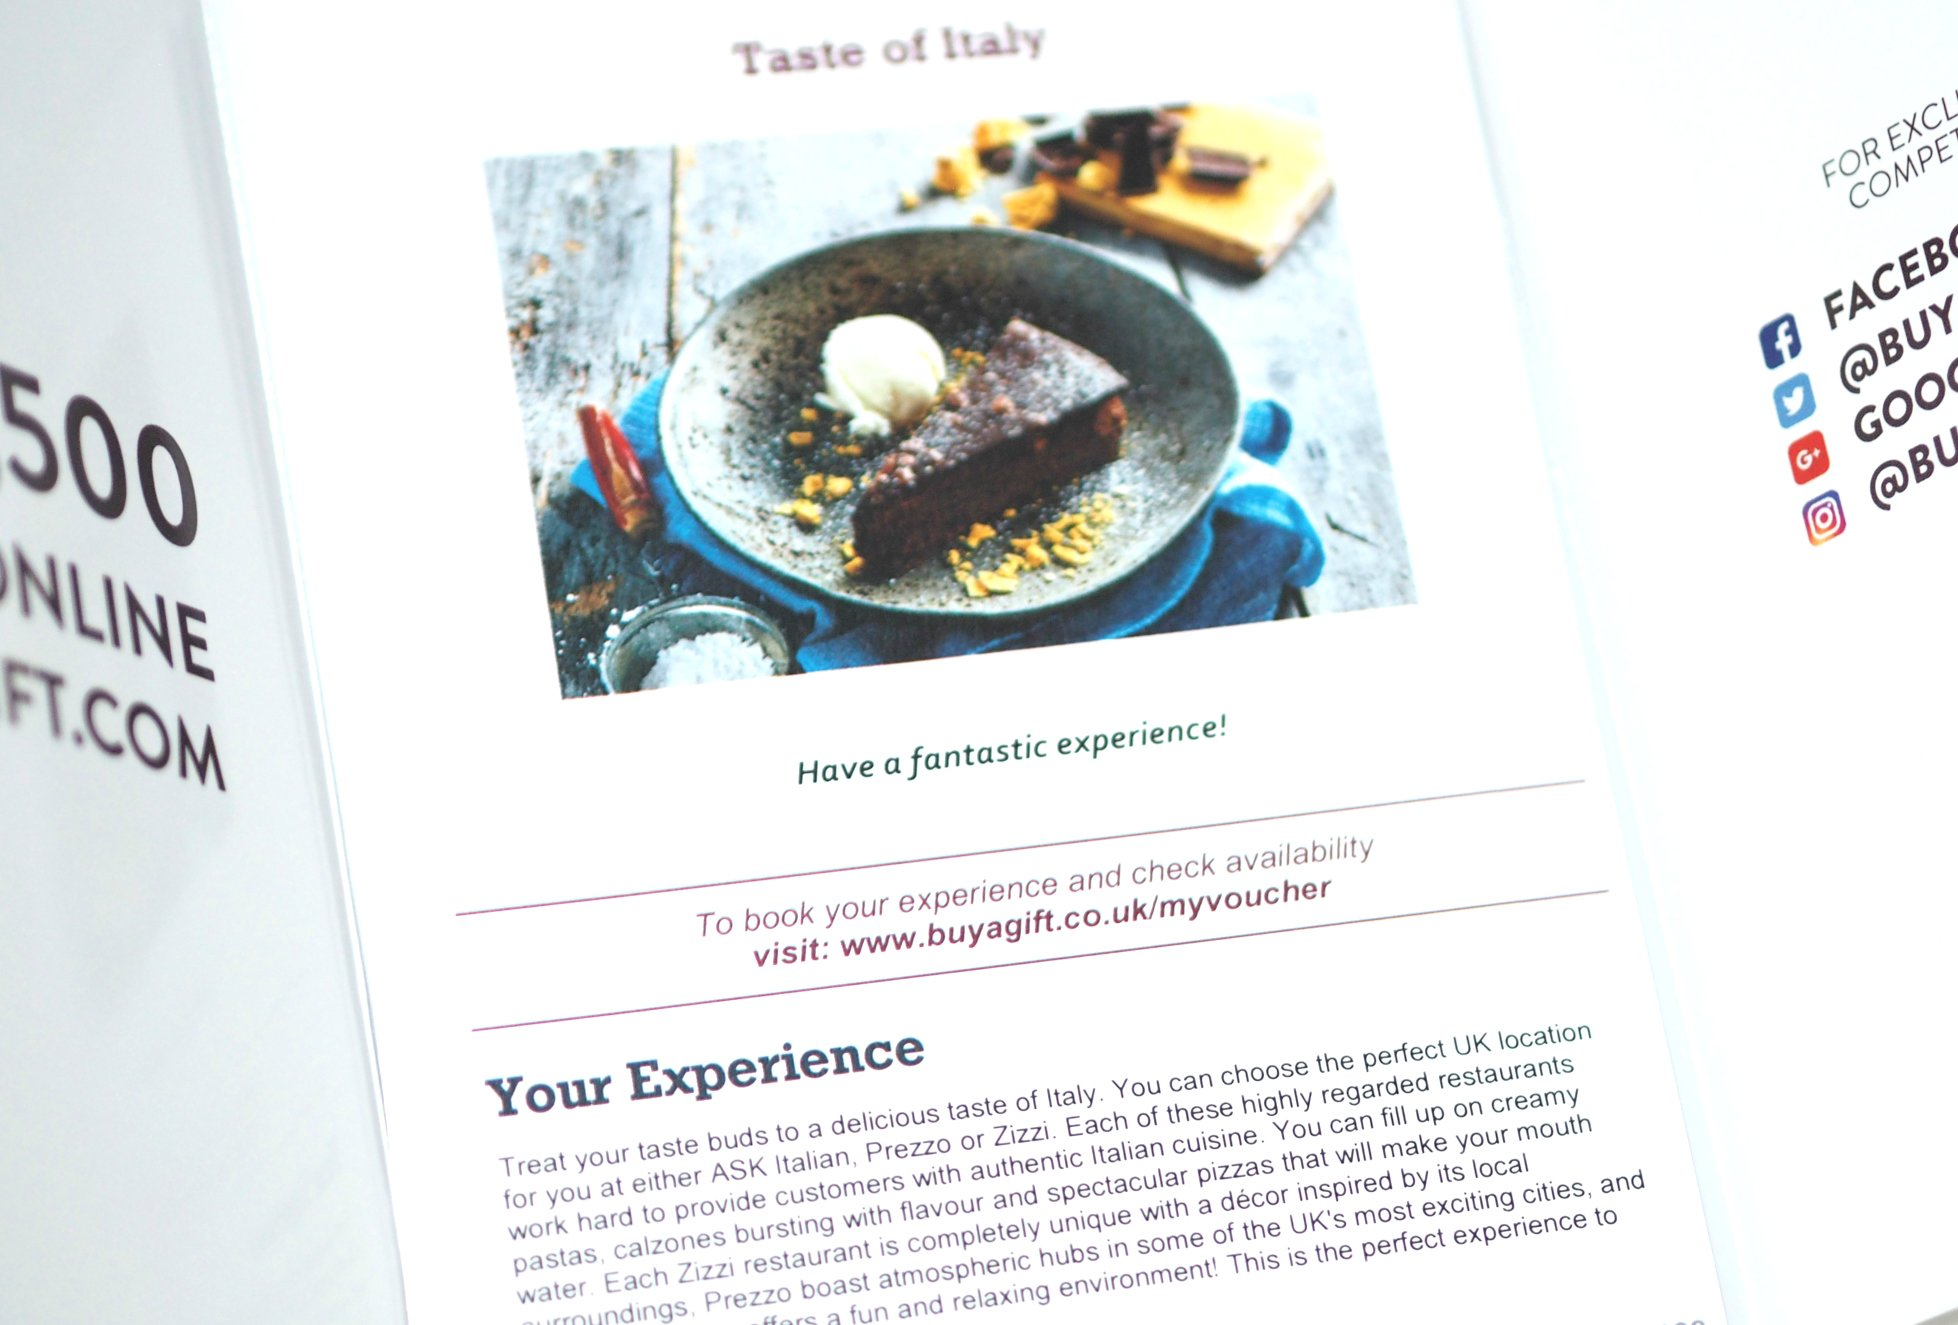 Valentine's Day Gift Guide 2019 - Taste of Italy Restaurant Voucher - The Gift Experience